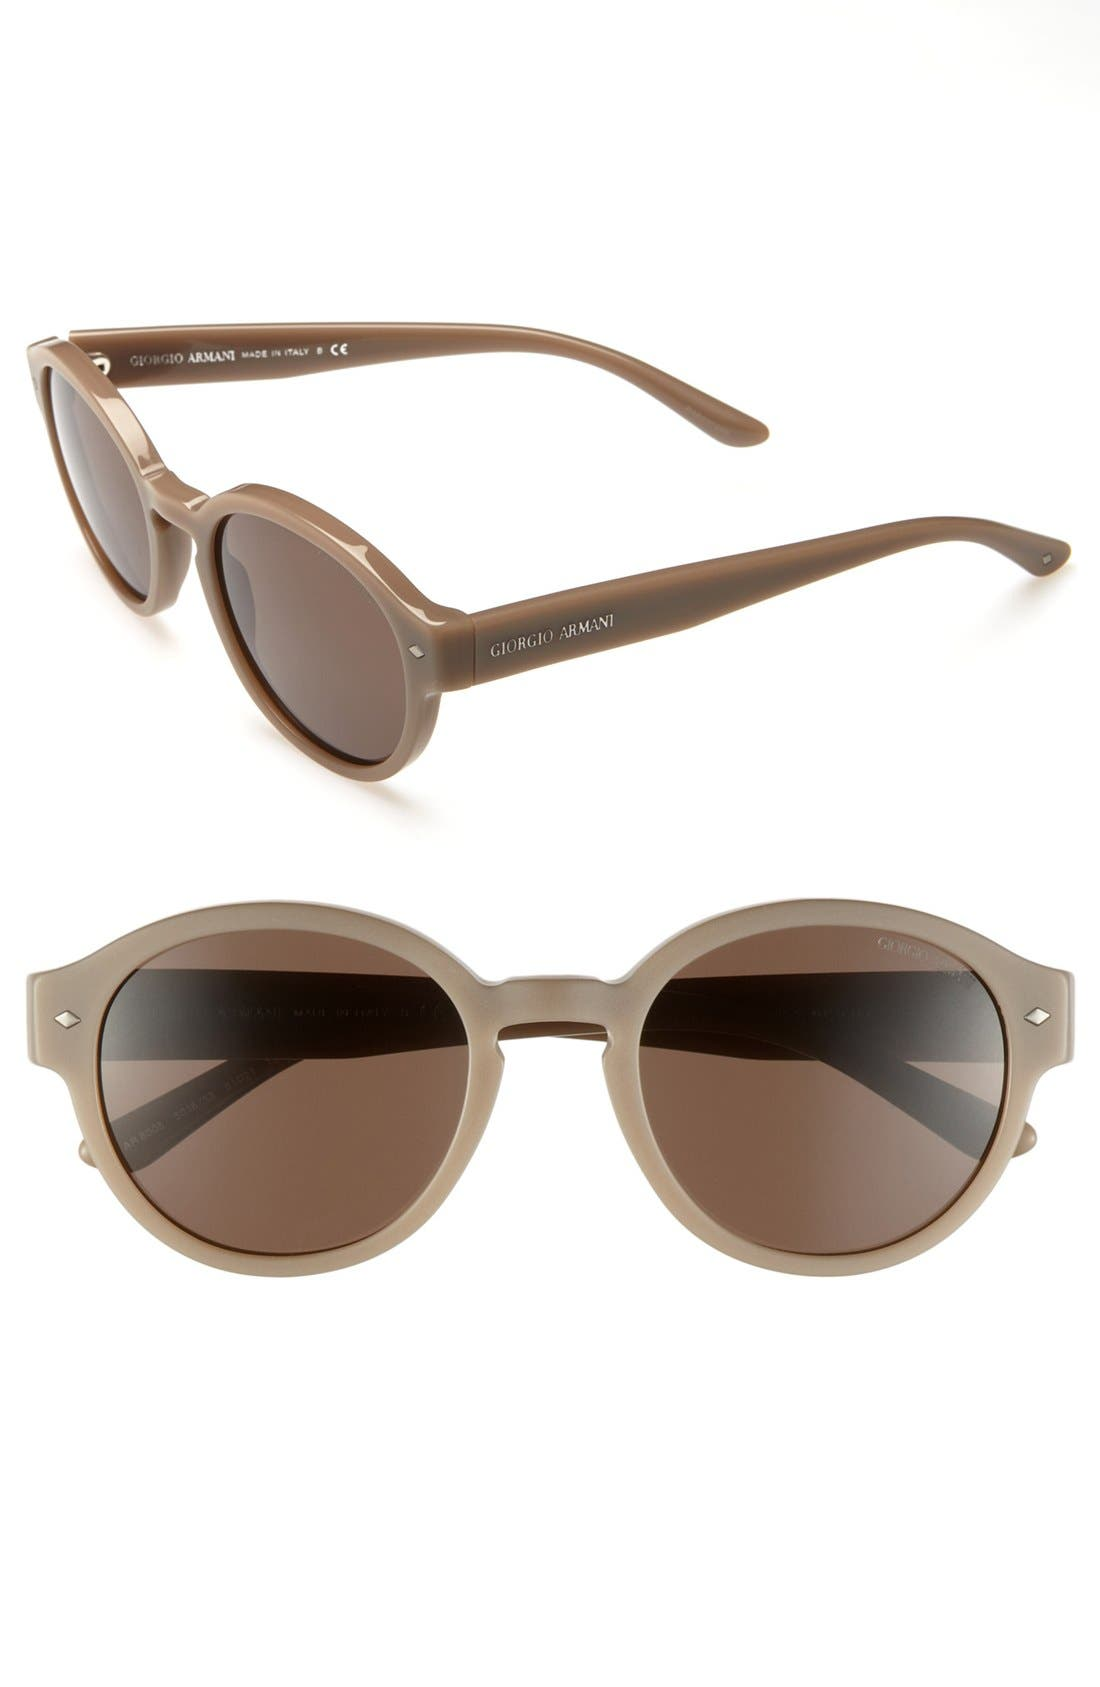 Main Image - Giorgio Armani 51mm Sunglasses